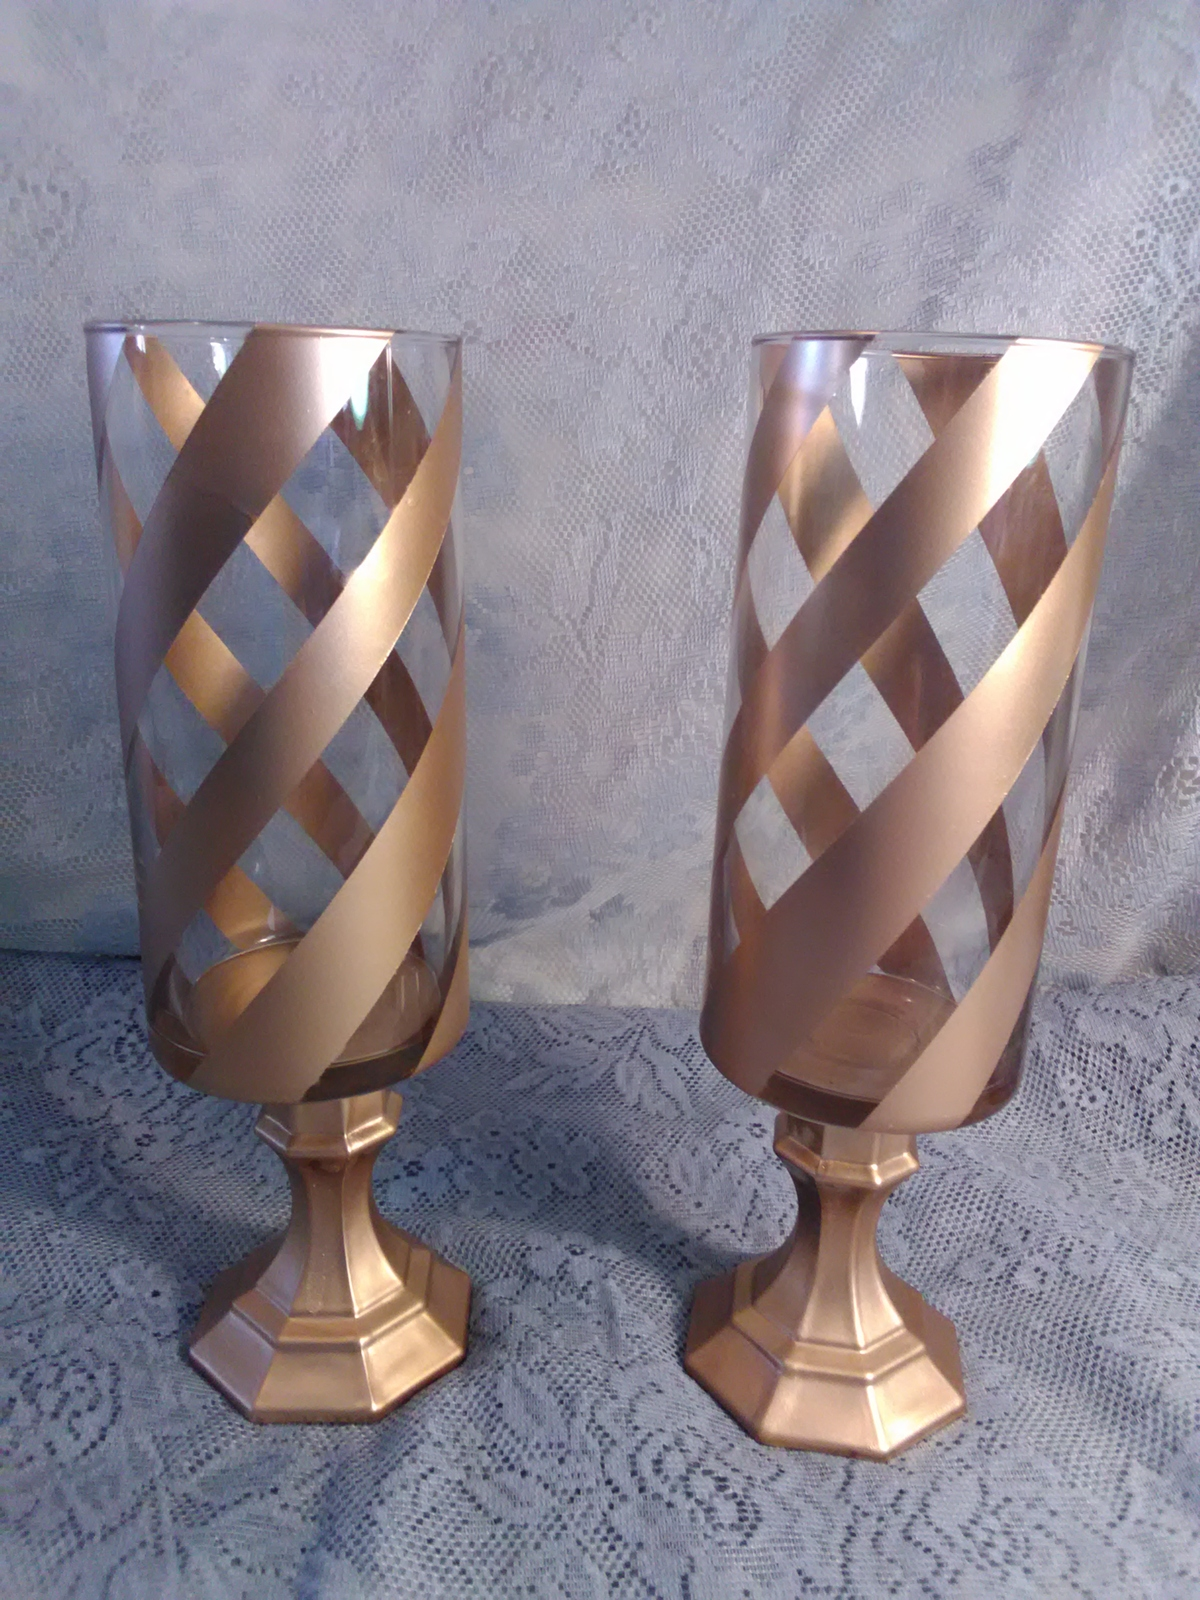 Primary image for 2pc. Gold Cheveron Candleholder Set